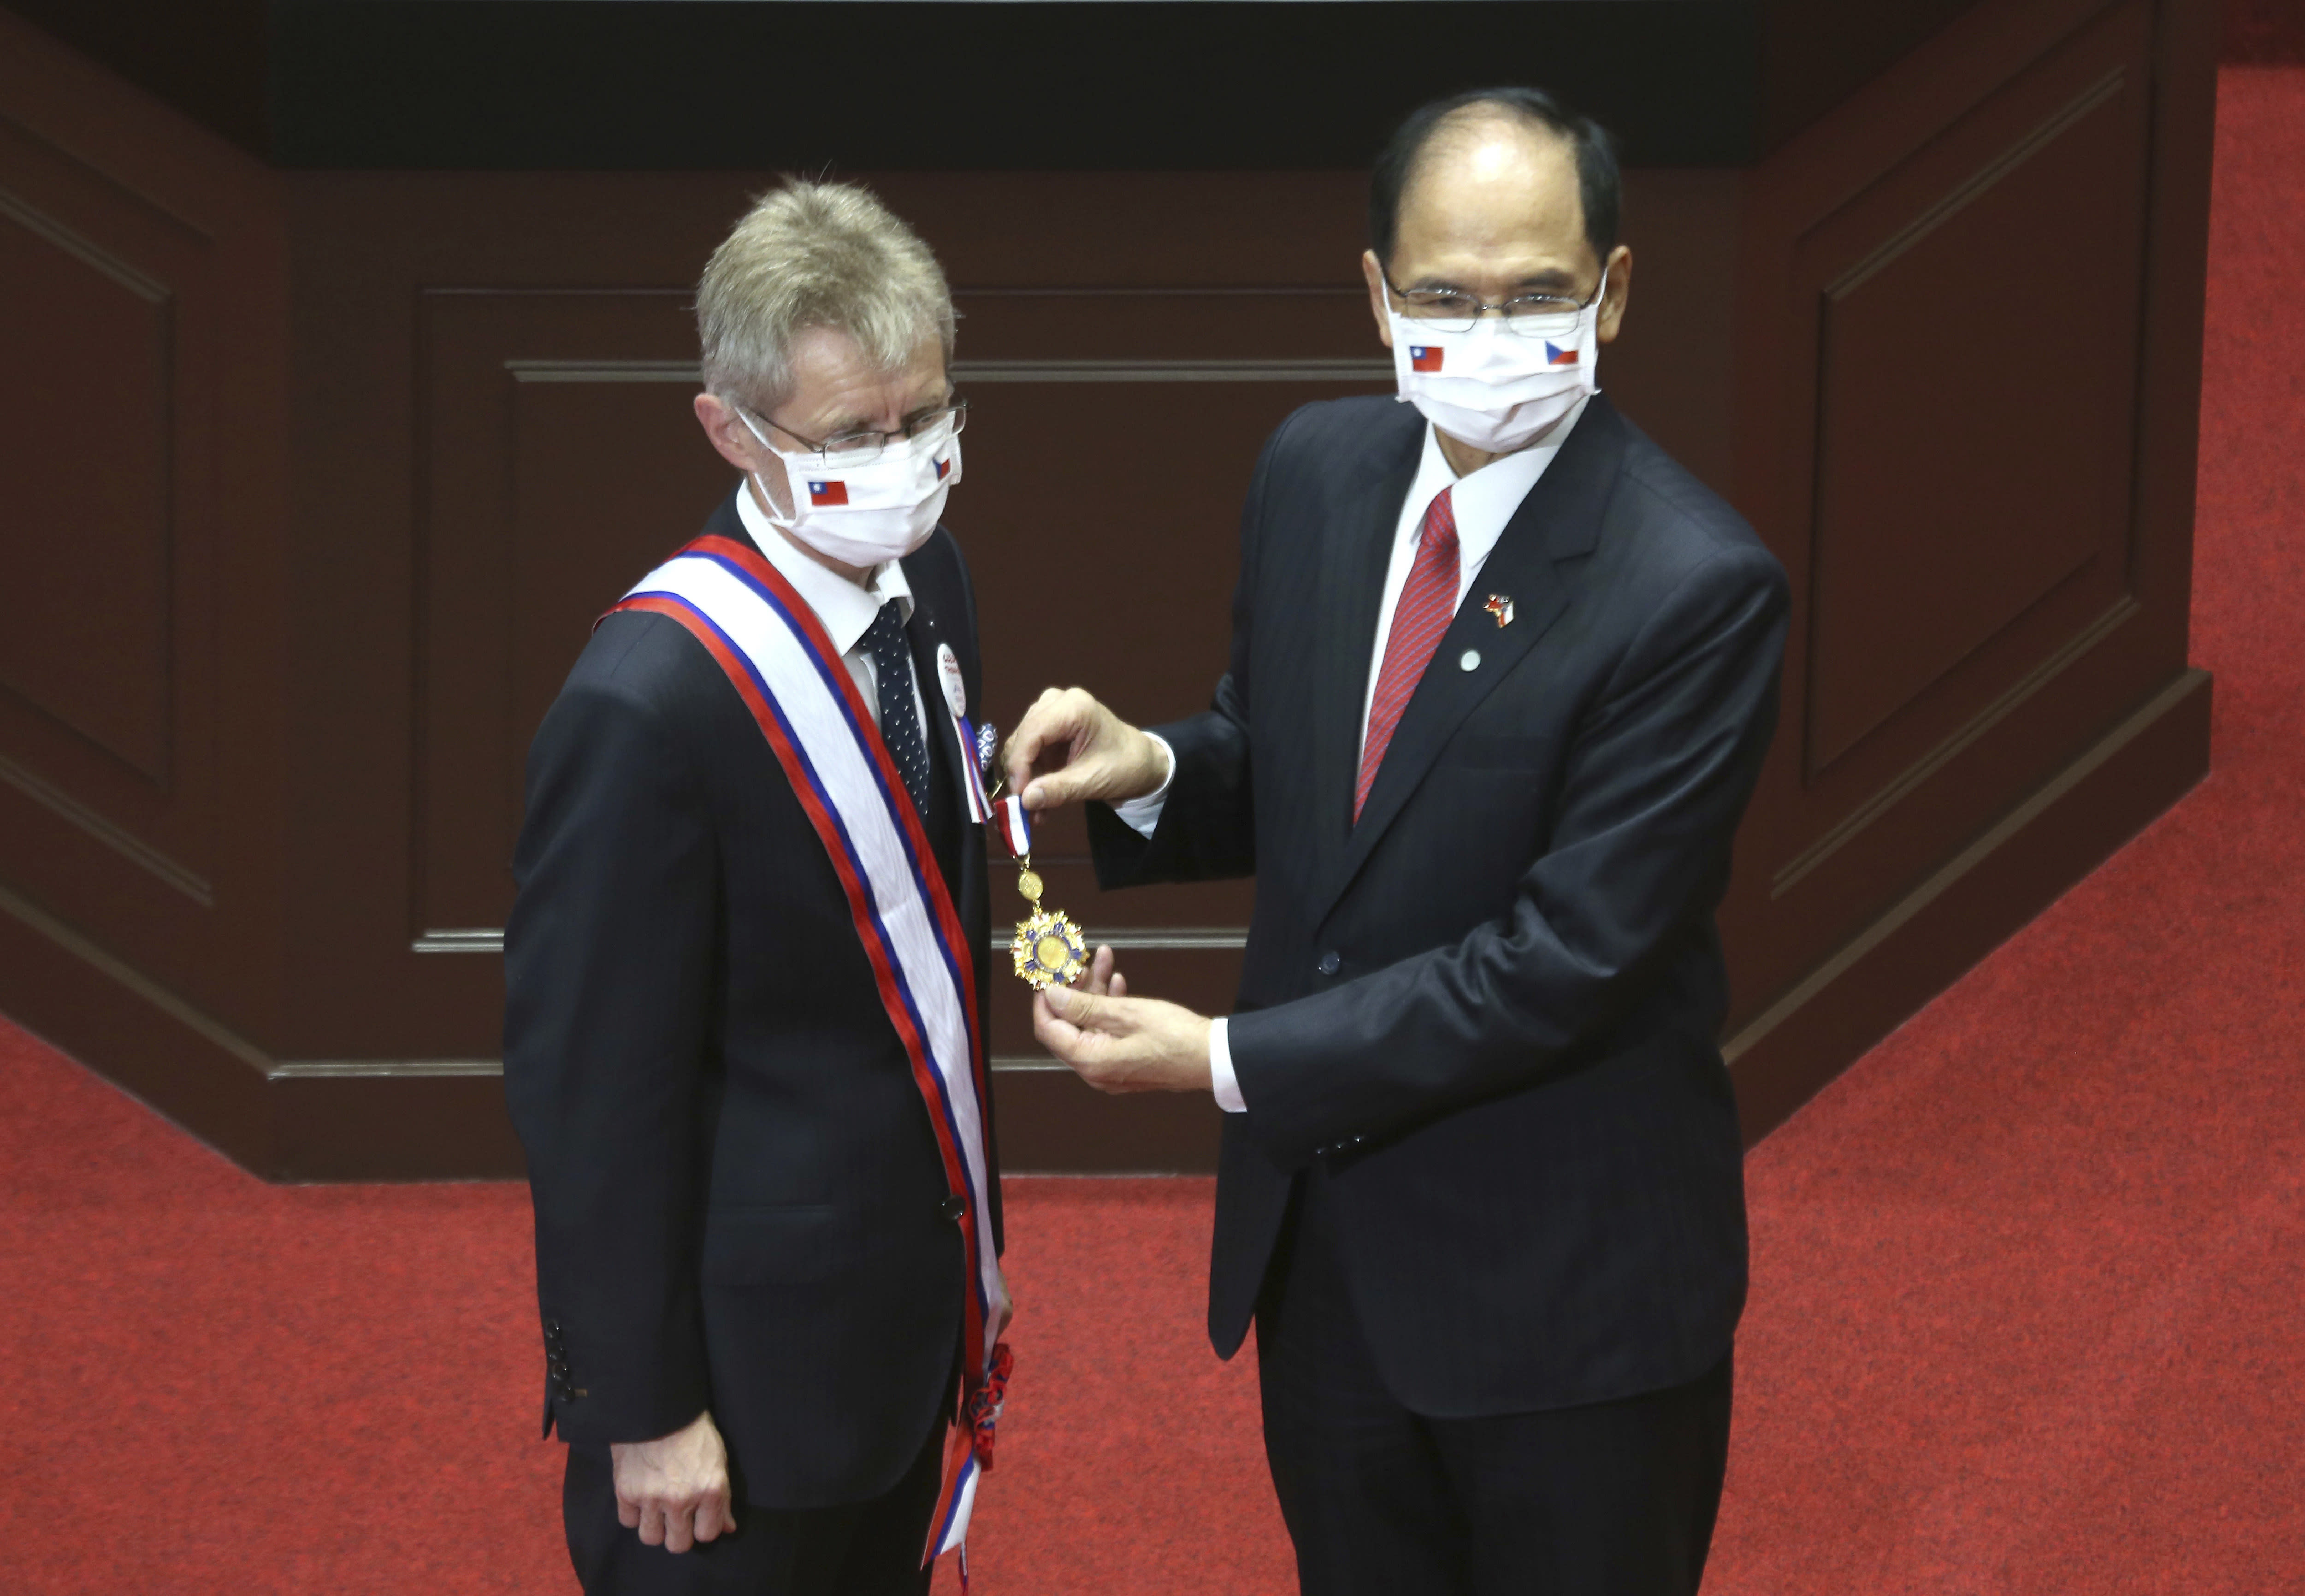 The Czech Senate President Milos Vystrcil, left, is decorated with a medal by President of the Legislative Yuan Yu Shyi-kun before Vystrcil delivers a speech at Legislative Yuan in Taipei, Taiwan, Tuesday, Sept. 1. 2020. Vystrcil arrived in Taiwan on Sunday accompanied by Prague Mayor Zdenek Hrib and more than 80 representatives from government, business and academia on a 6-day visit. (AP Photo/Chiang Ying-ying)